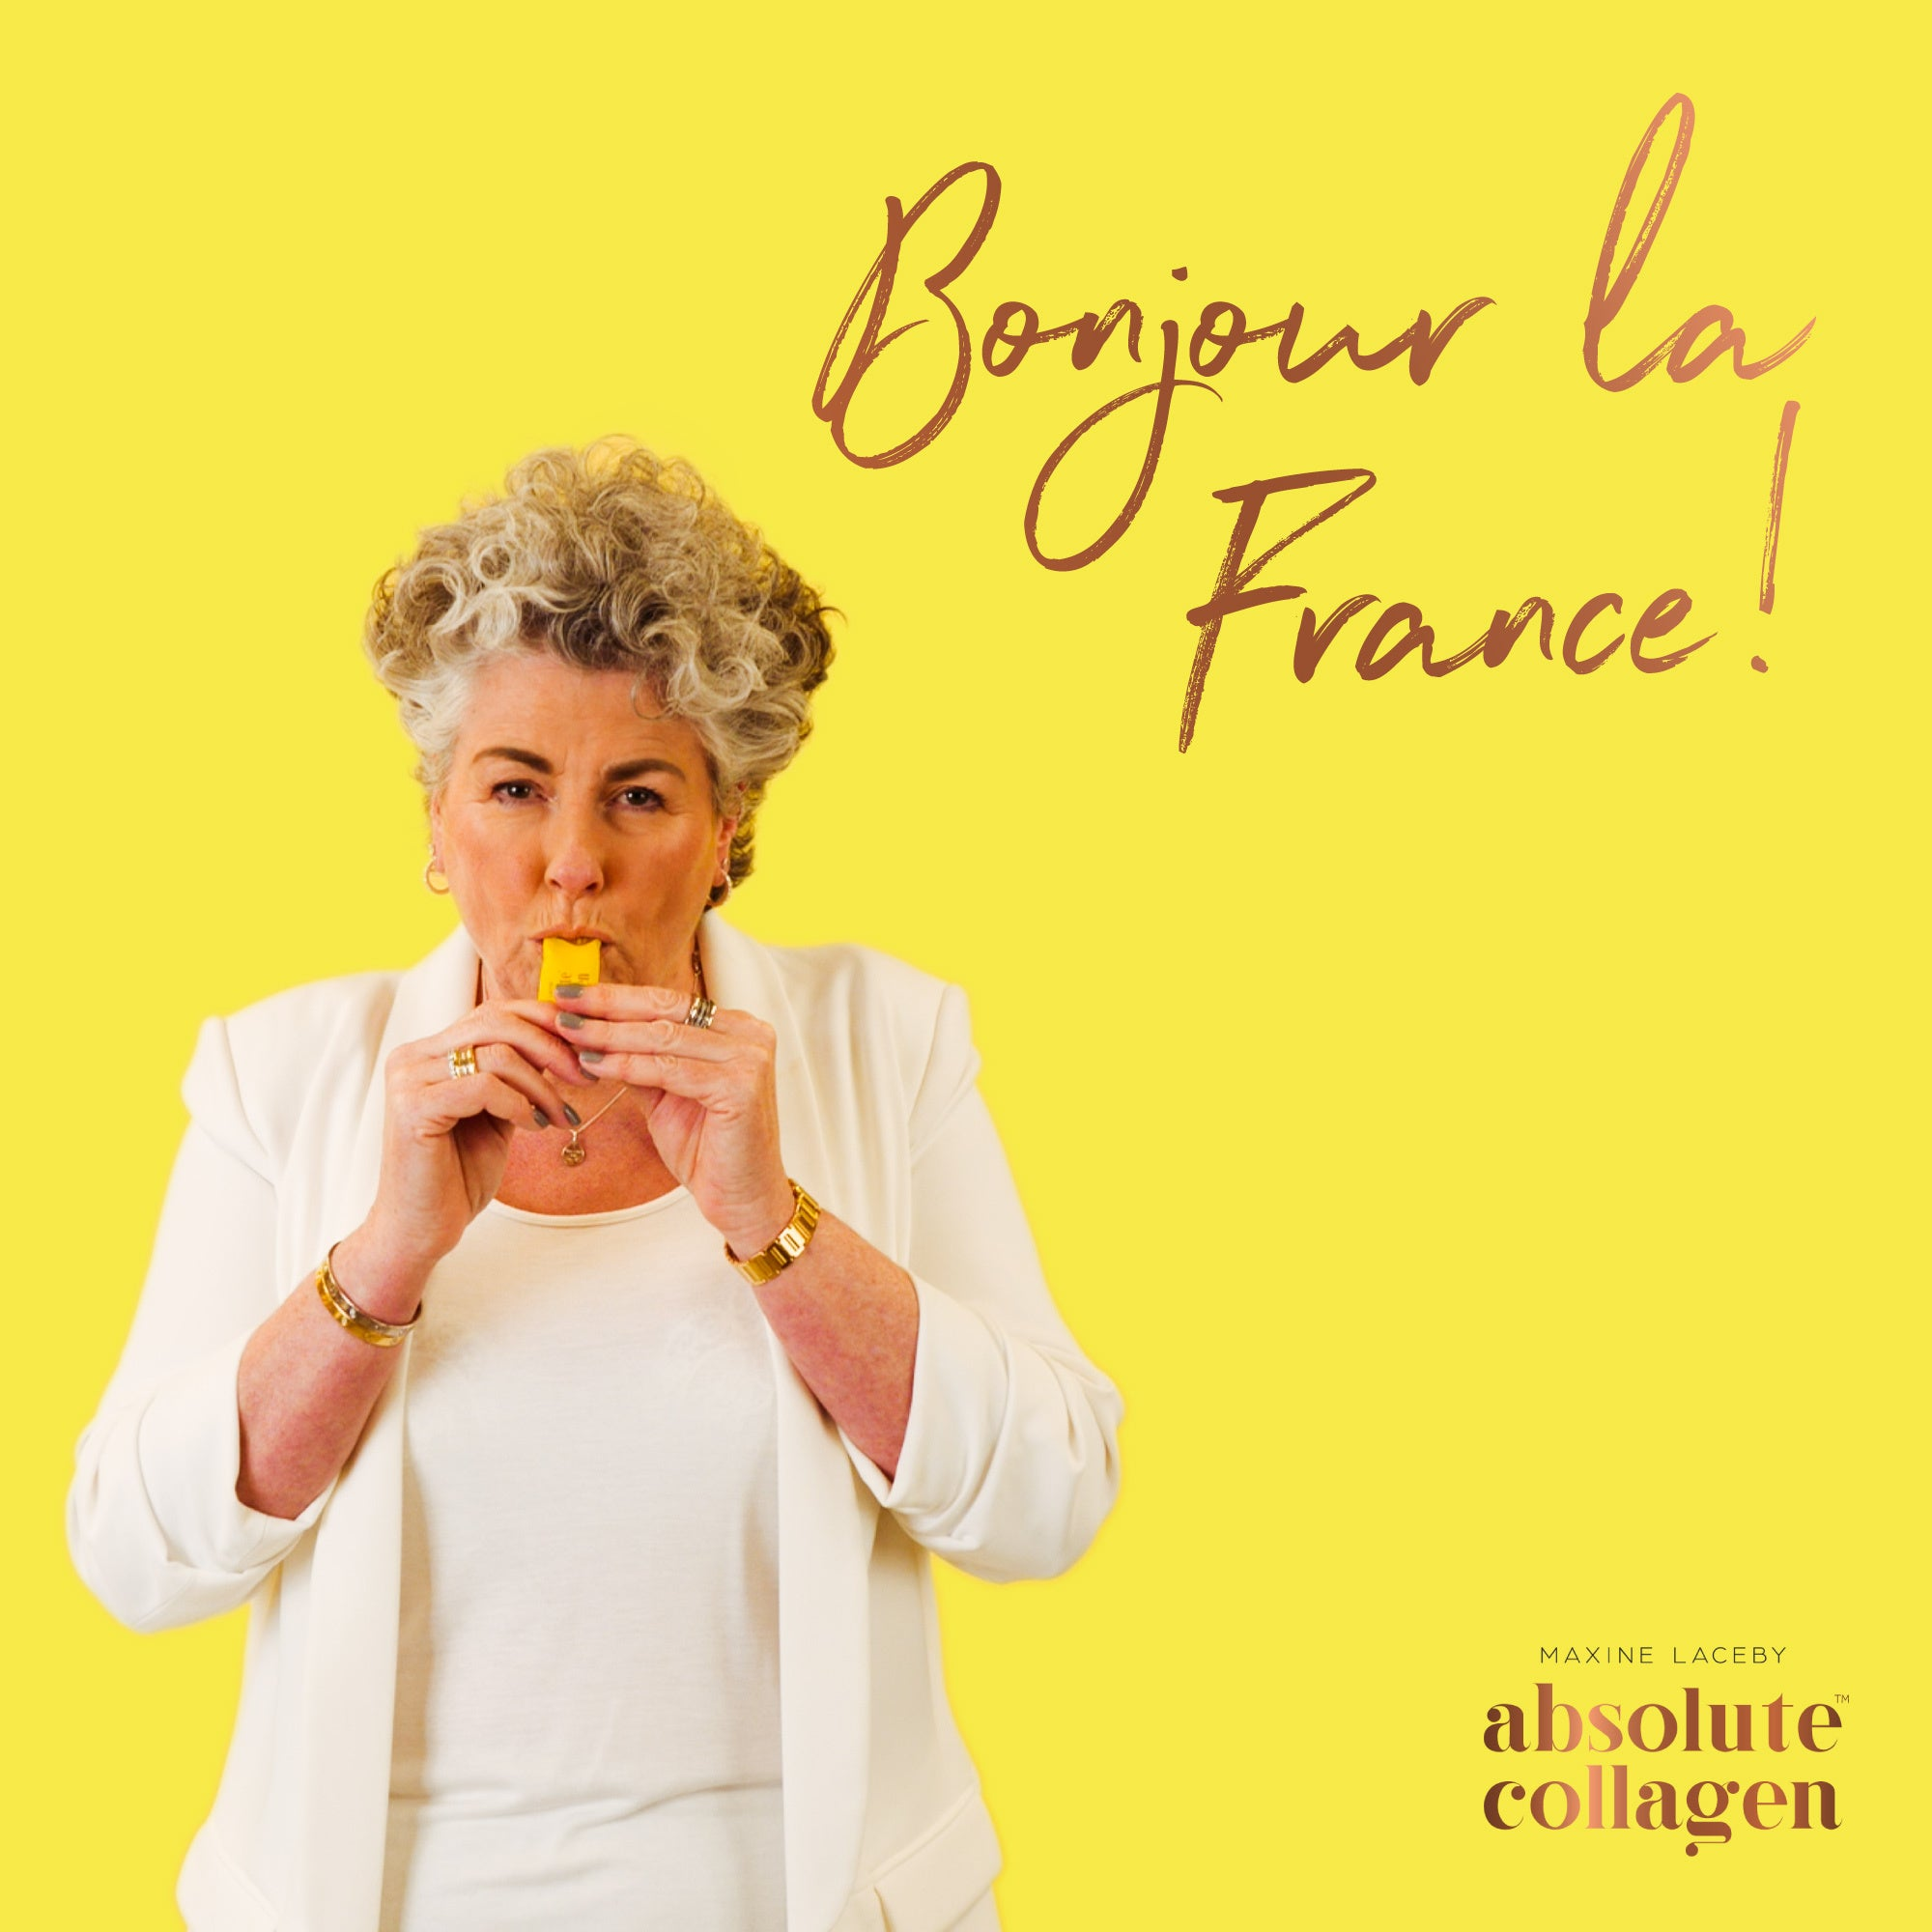 Photo showing Maxine Laceby wearing white and standing against a yellow background, she is taking a sachet of Absolute Collagen and the words Binjiur la France are emblazoned in copper writing to her right